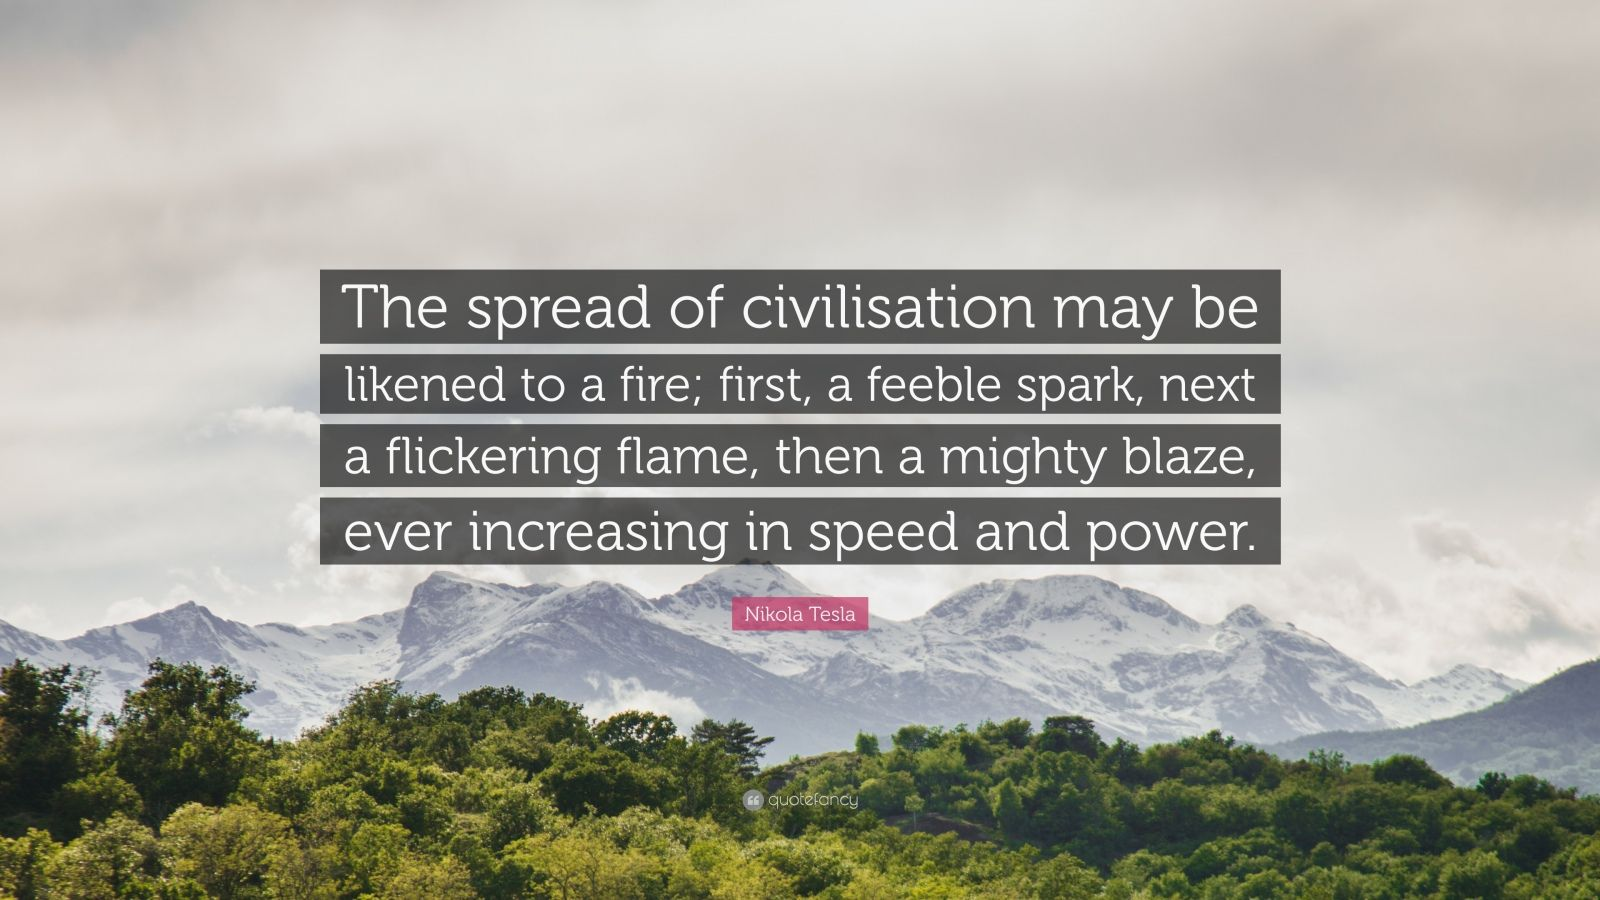 """Nikola Tesla Quote: """"The spread of civilisation may be likened to a fire; first, a feeble spark, next a flickering flame, then a mighty blaze, ever increasing in speed and power."""""""